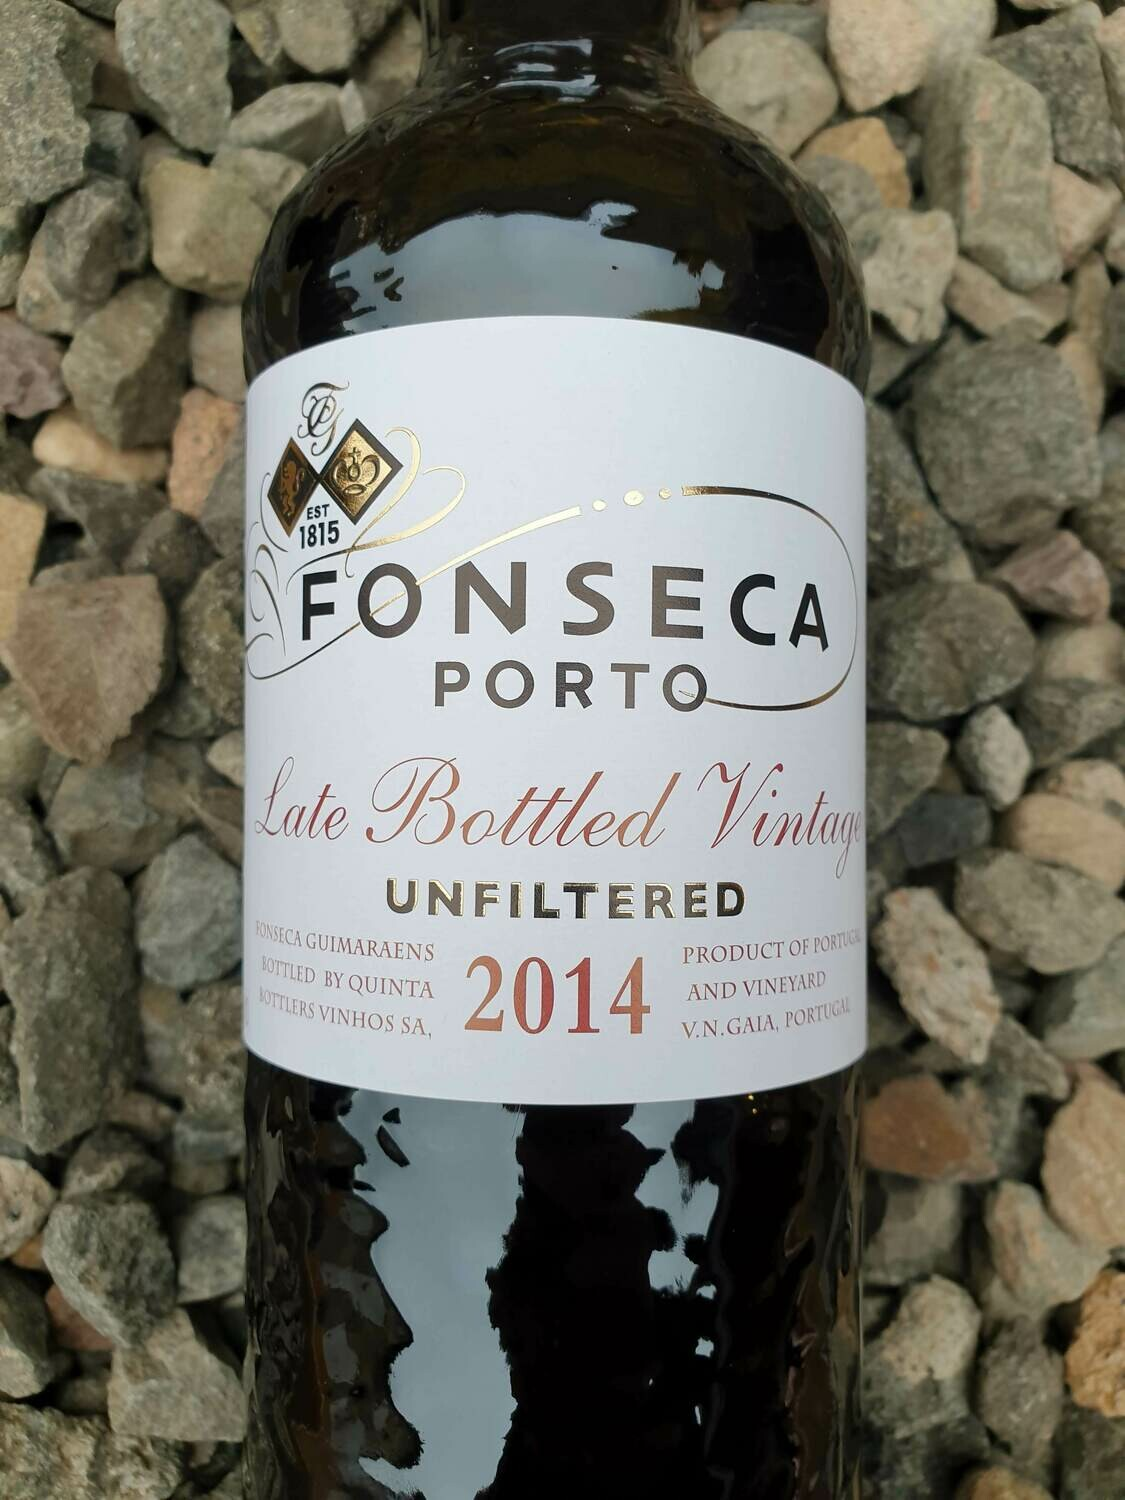 Fonseca Unfiltered Late Bottle Vintage 2014